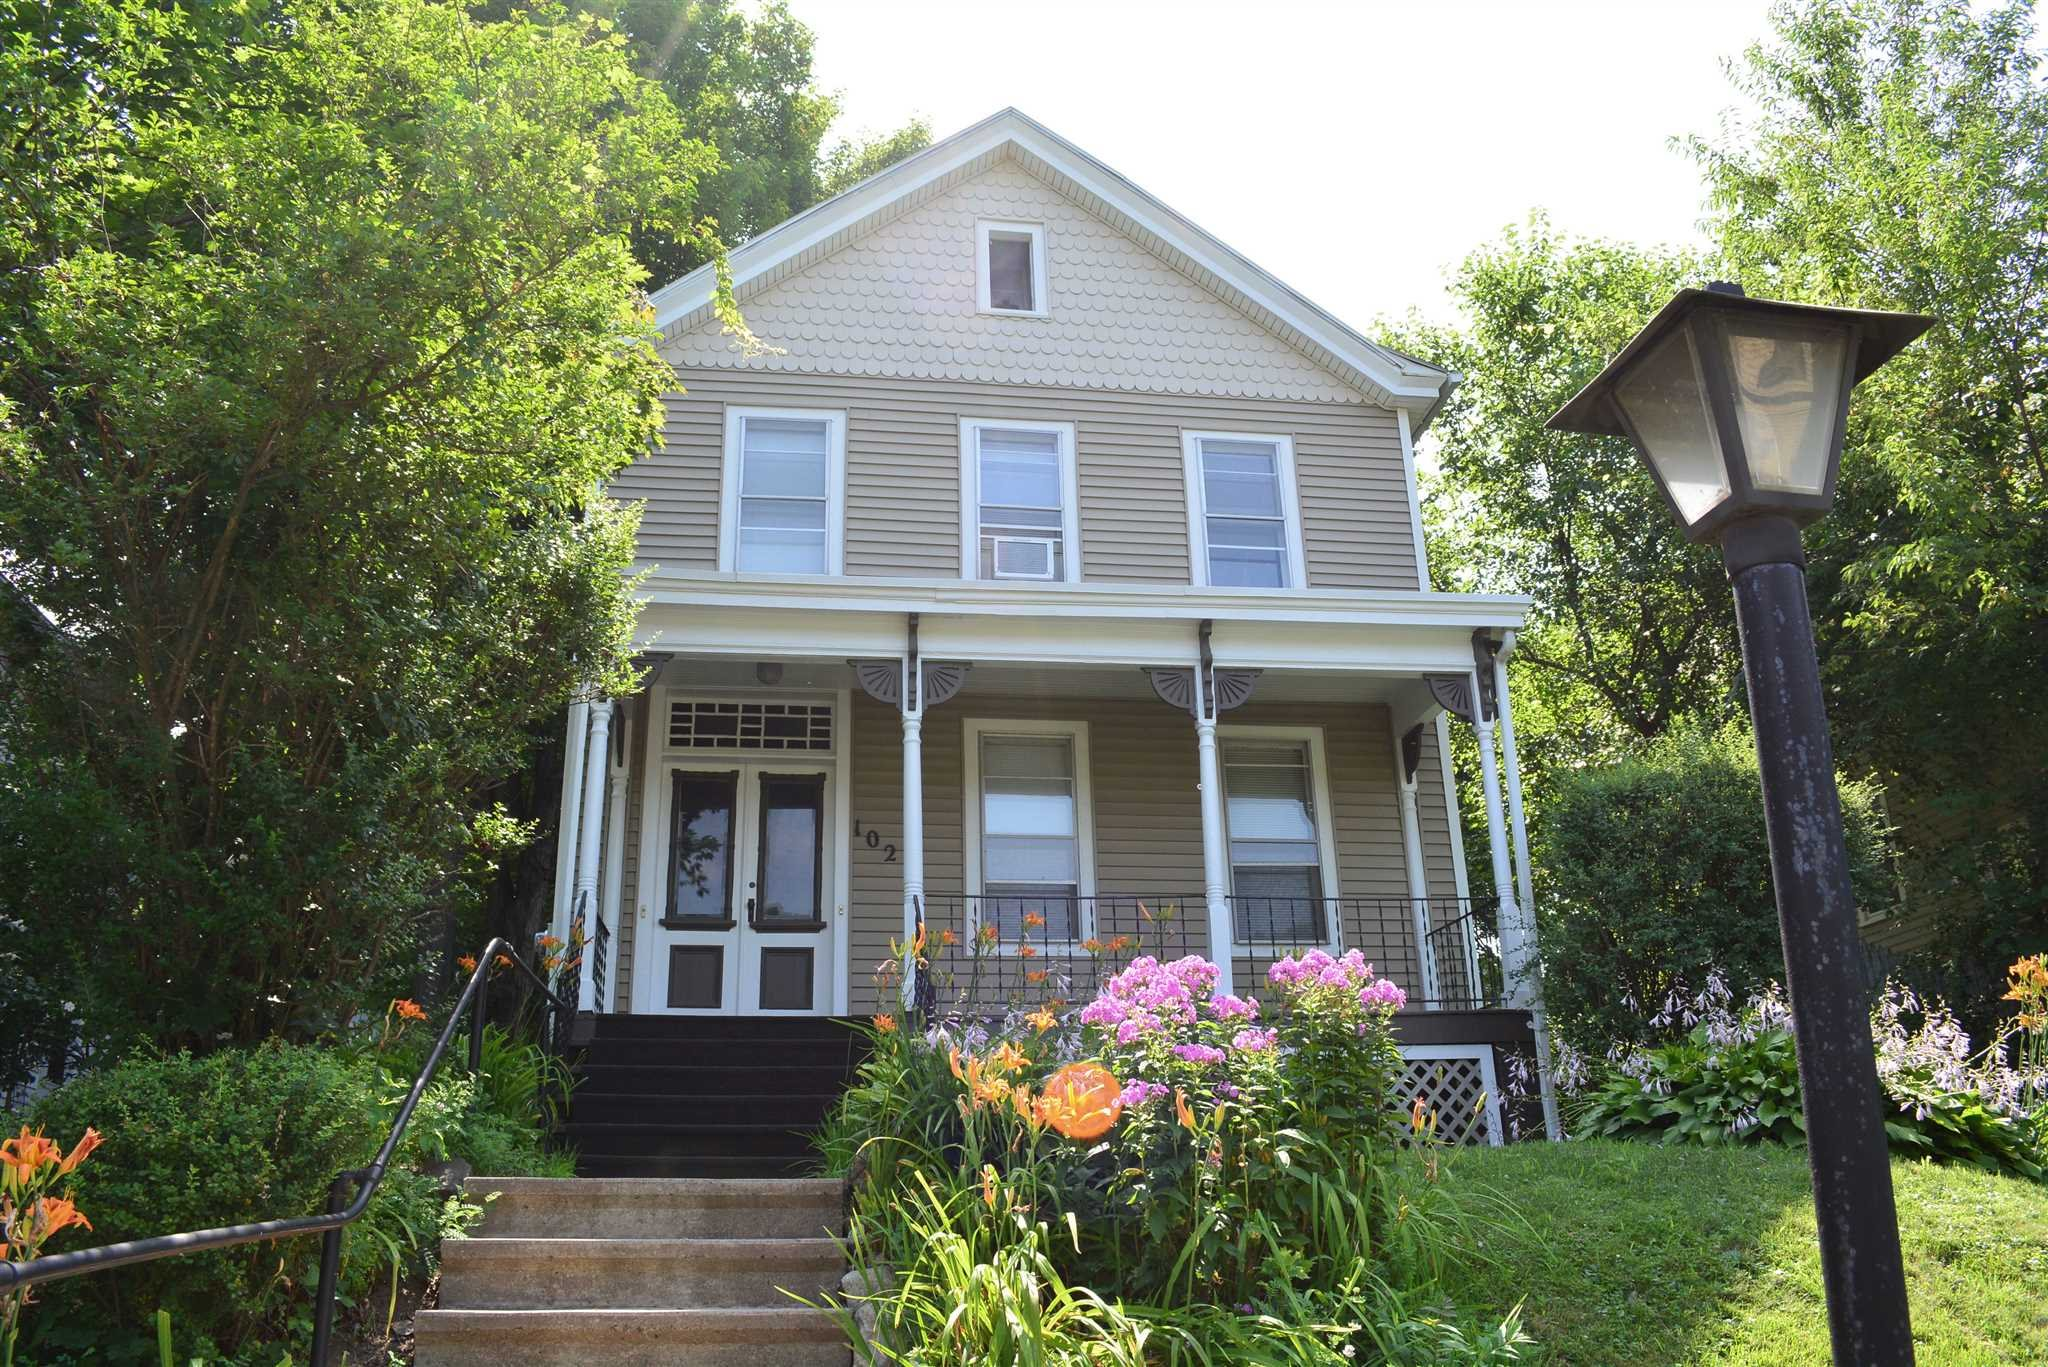 Single Family Home for Sale at 102 CLIFTON AVENUE 102 CLIFTON AVENUE Kingston, New York 12401 United States